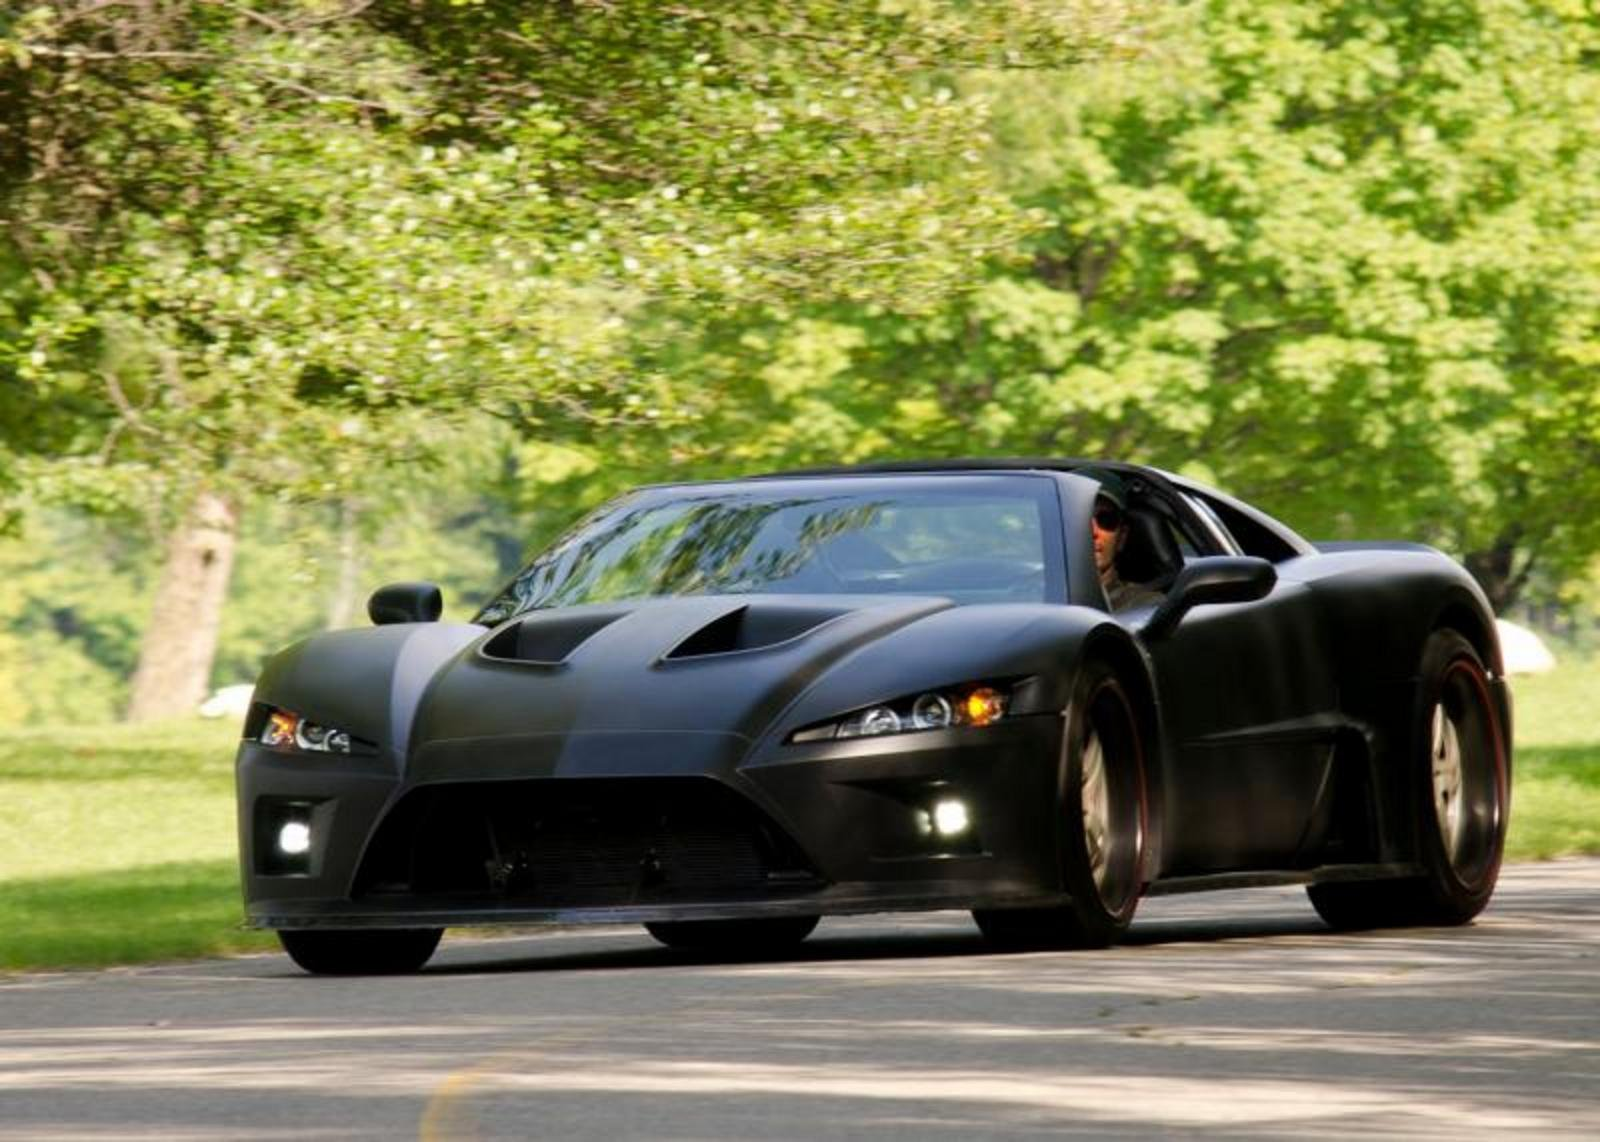 Police Cars For Sale >> 2012 Mach7 Motorsports Falcon F7 Review - Top Speed